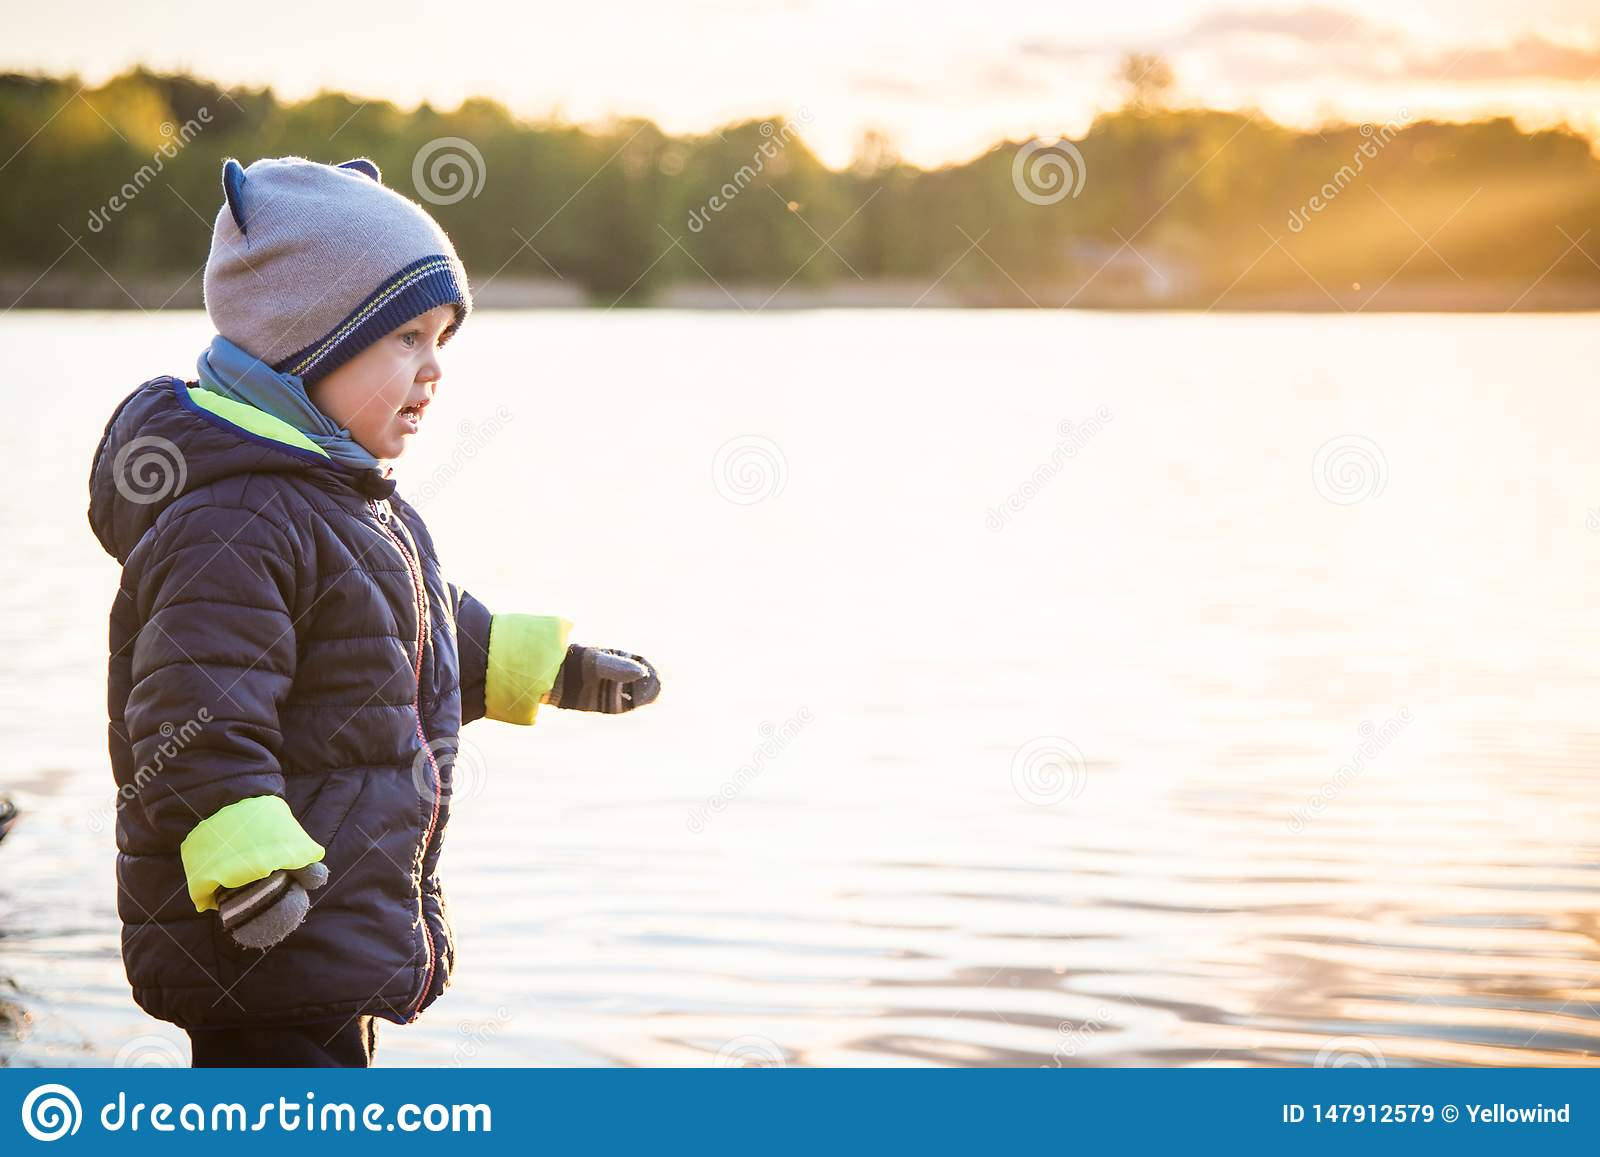 Cute toddler boy in spring clothes near water